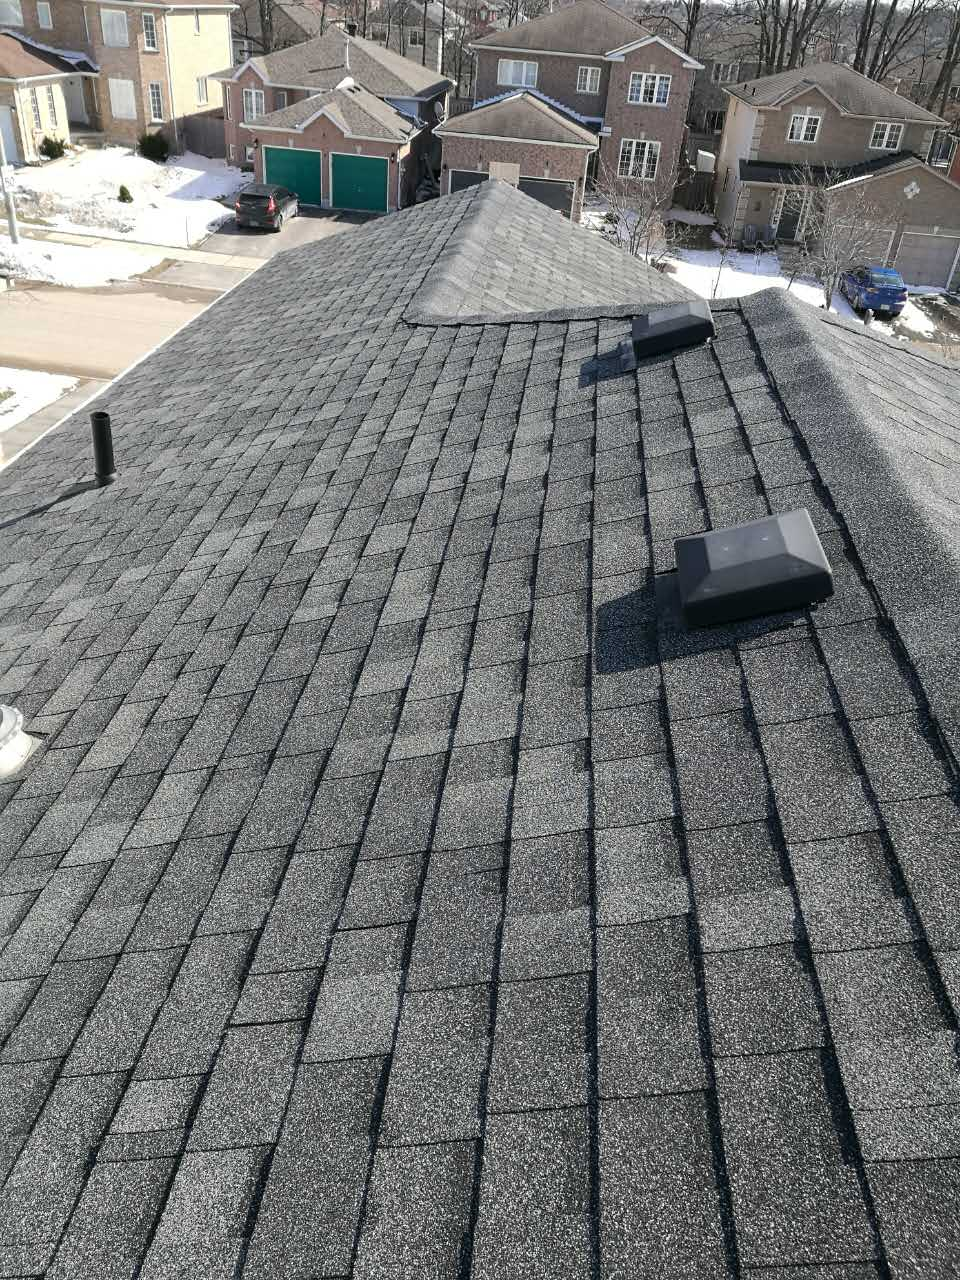 Commercial Roofing Dh Roofing And Renovation Ontario